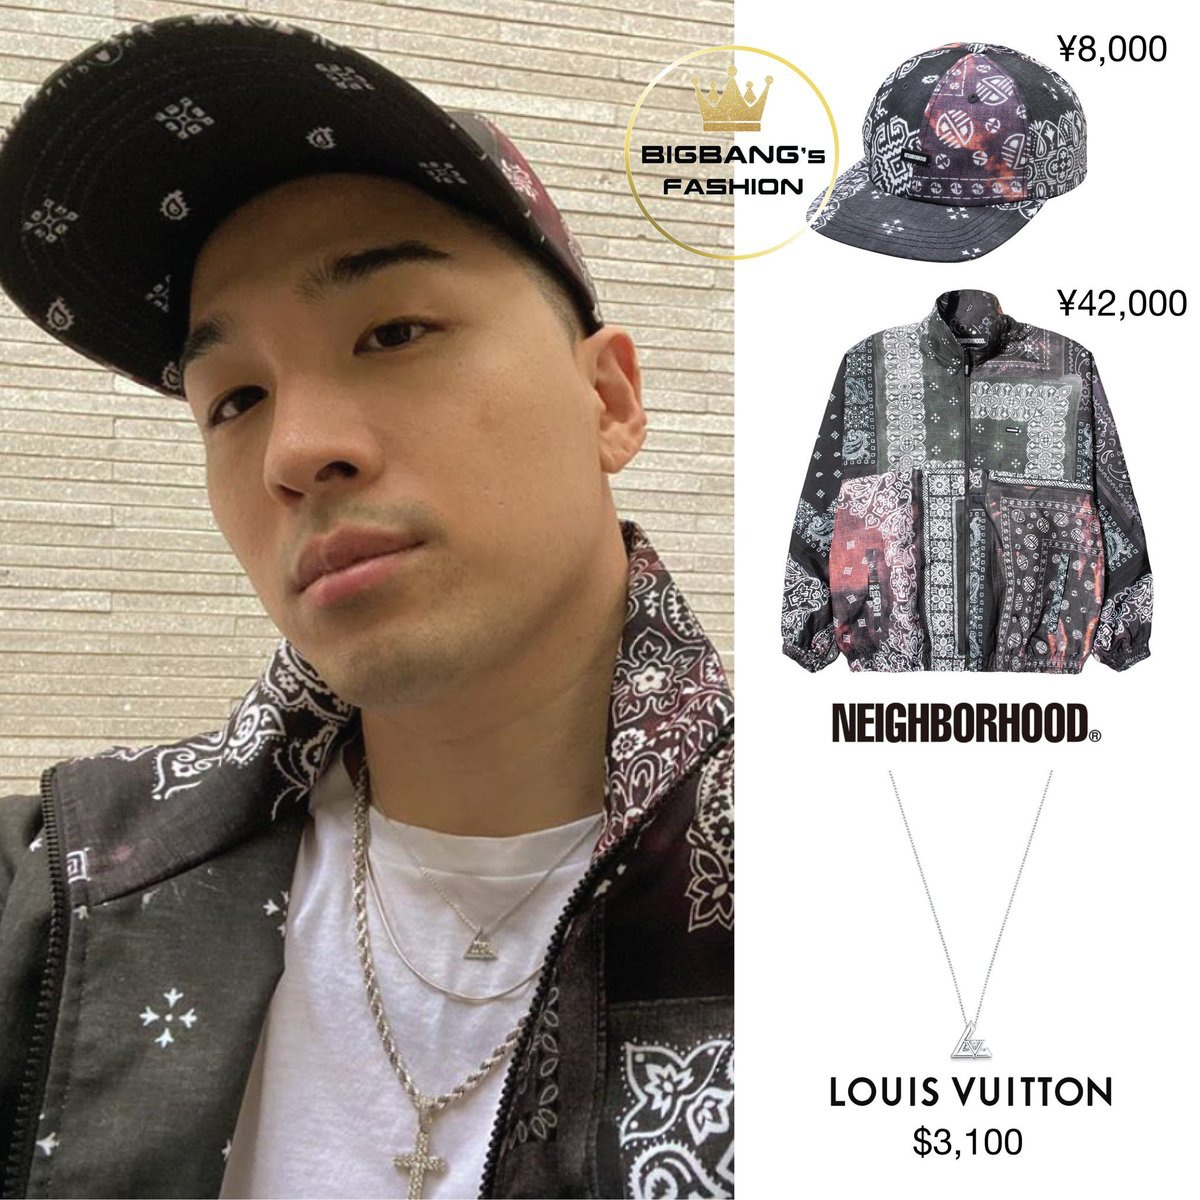 200915 __youngbae__ IG Update ✨ DAD-B / E-CAP (¥8,000) ✨ TRACK-B / E-JKT (¥42,000) ✨ LV VOLT ONE SMALL PENDANT, WHITE GOLD AND DIAMOND ($3,100)